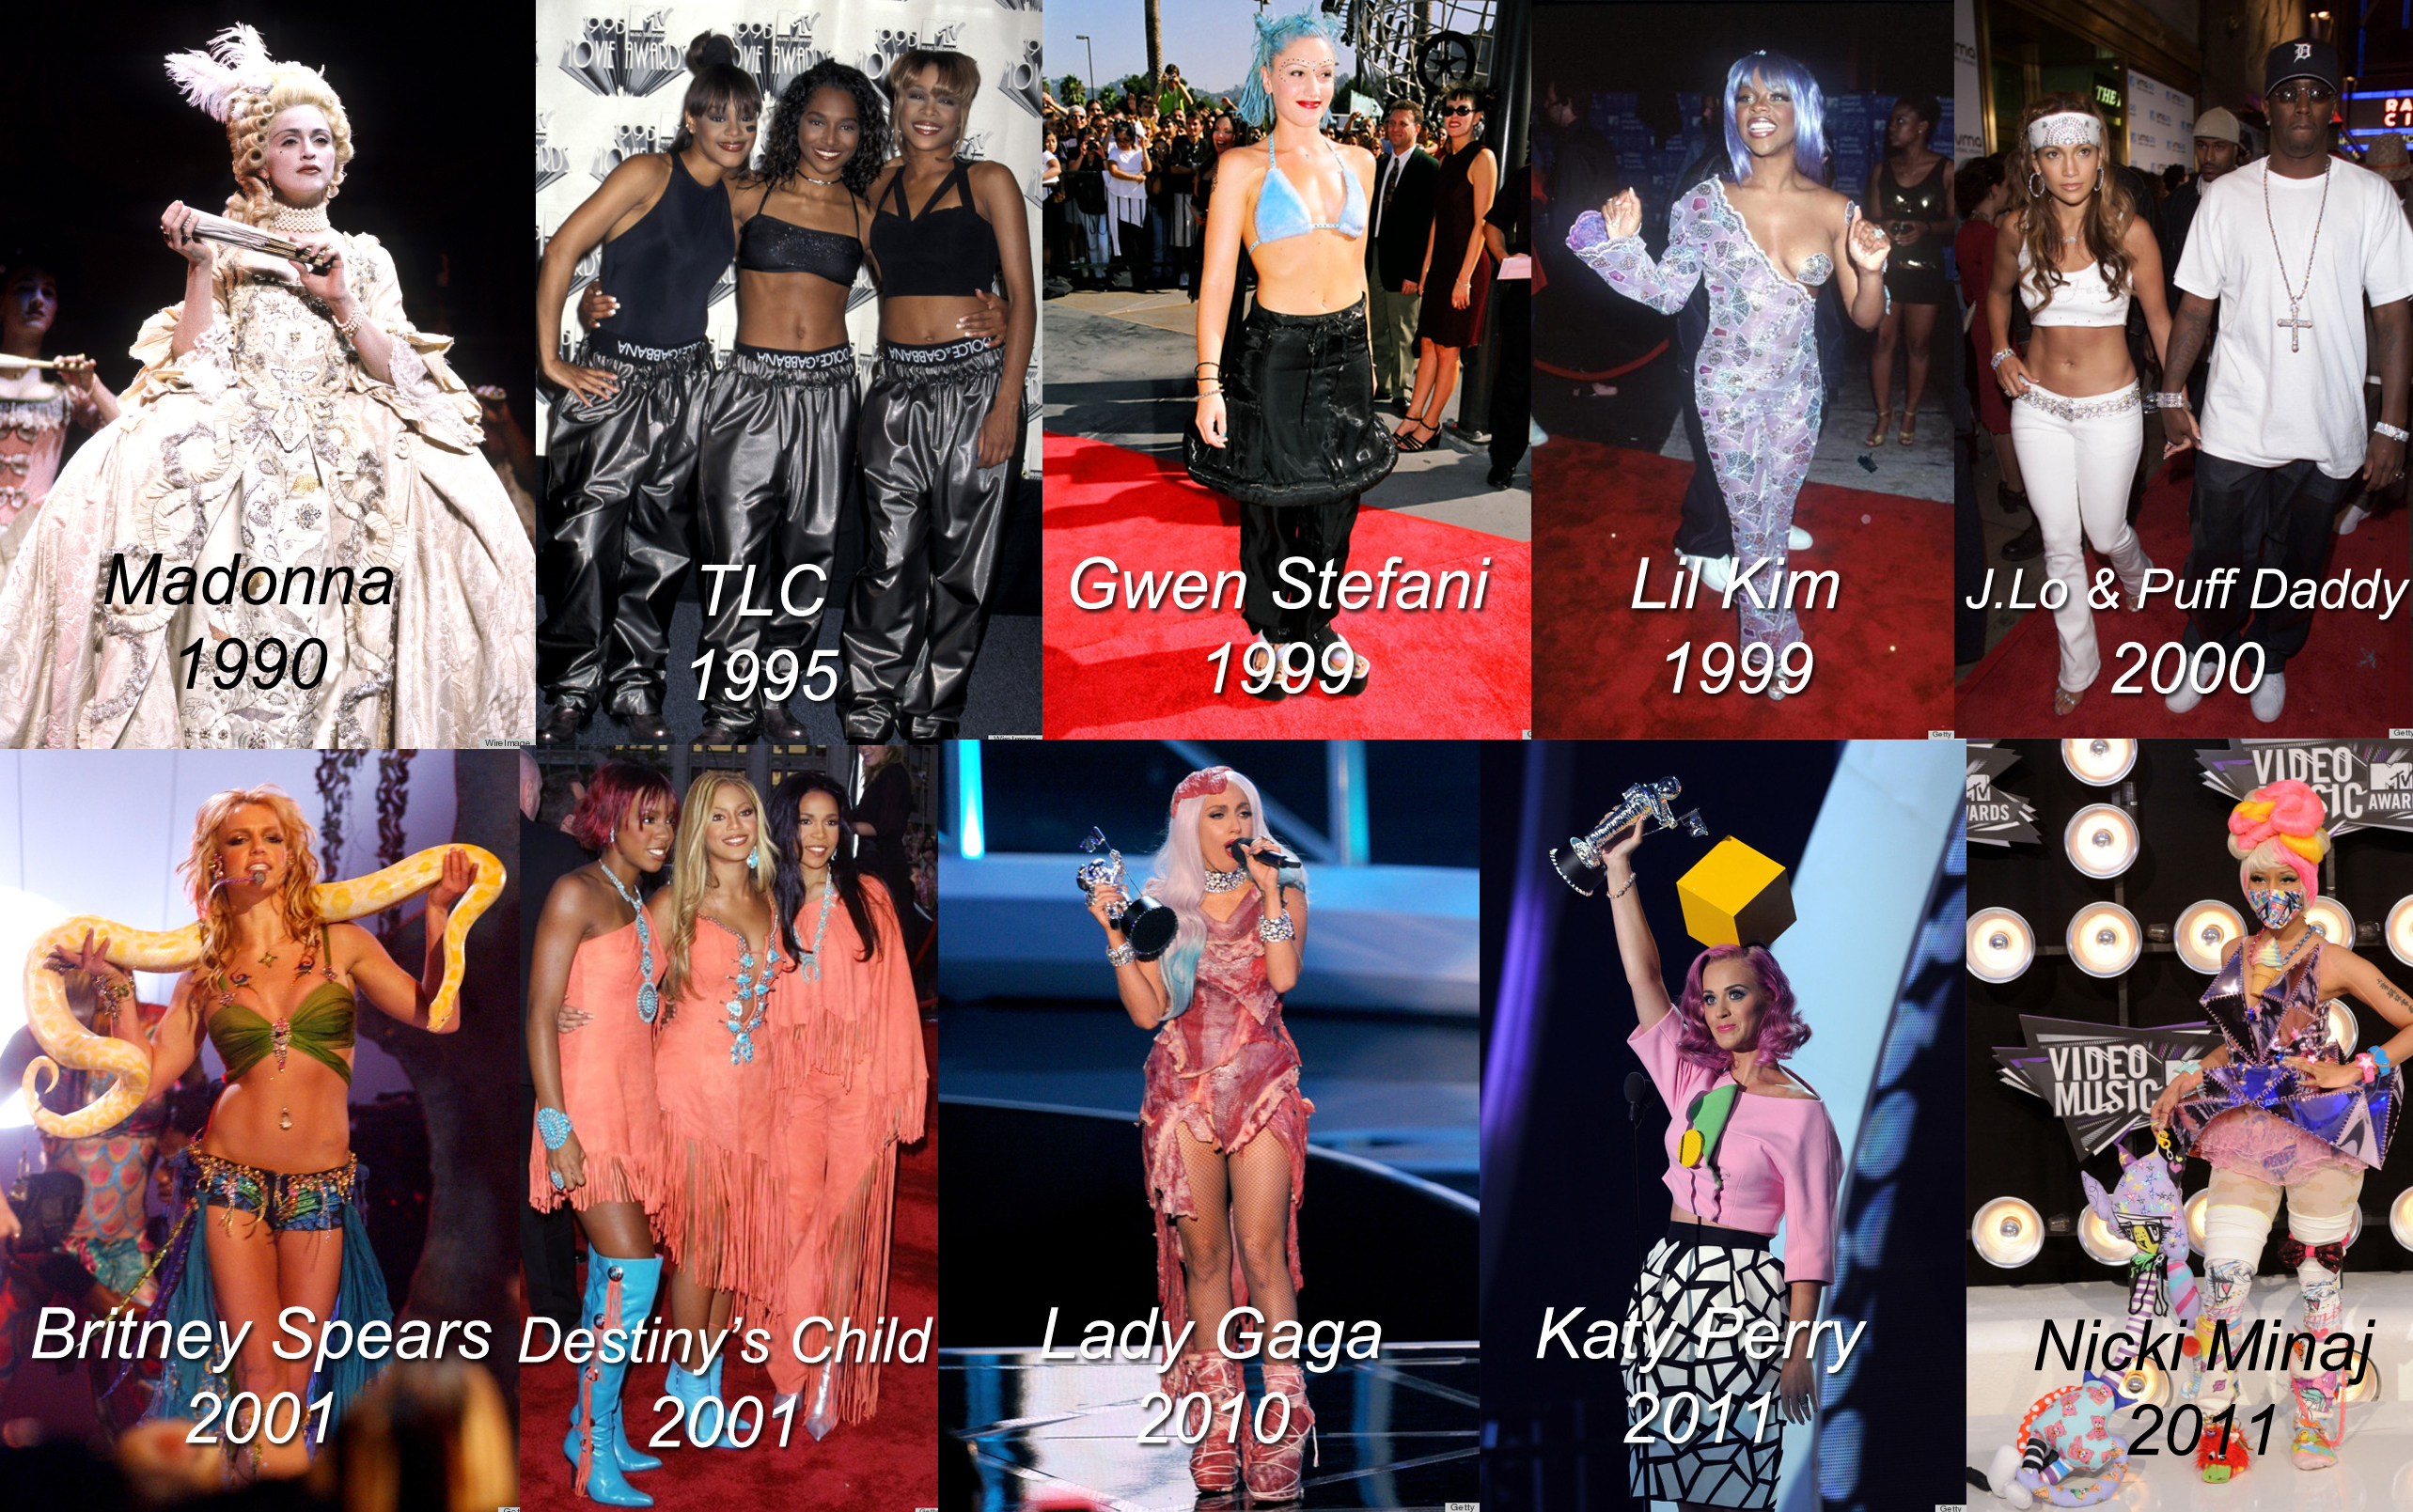 Here are some of the bold, outrageous looks that have graced the VMA red carpets from the '90s to today. (Photos: The Huffintgon Post)